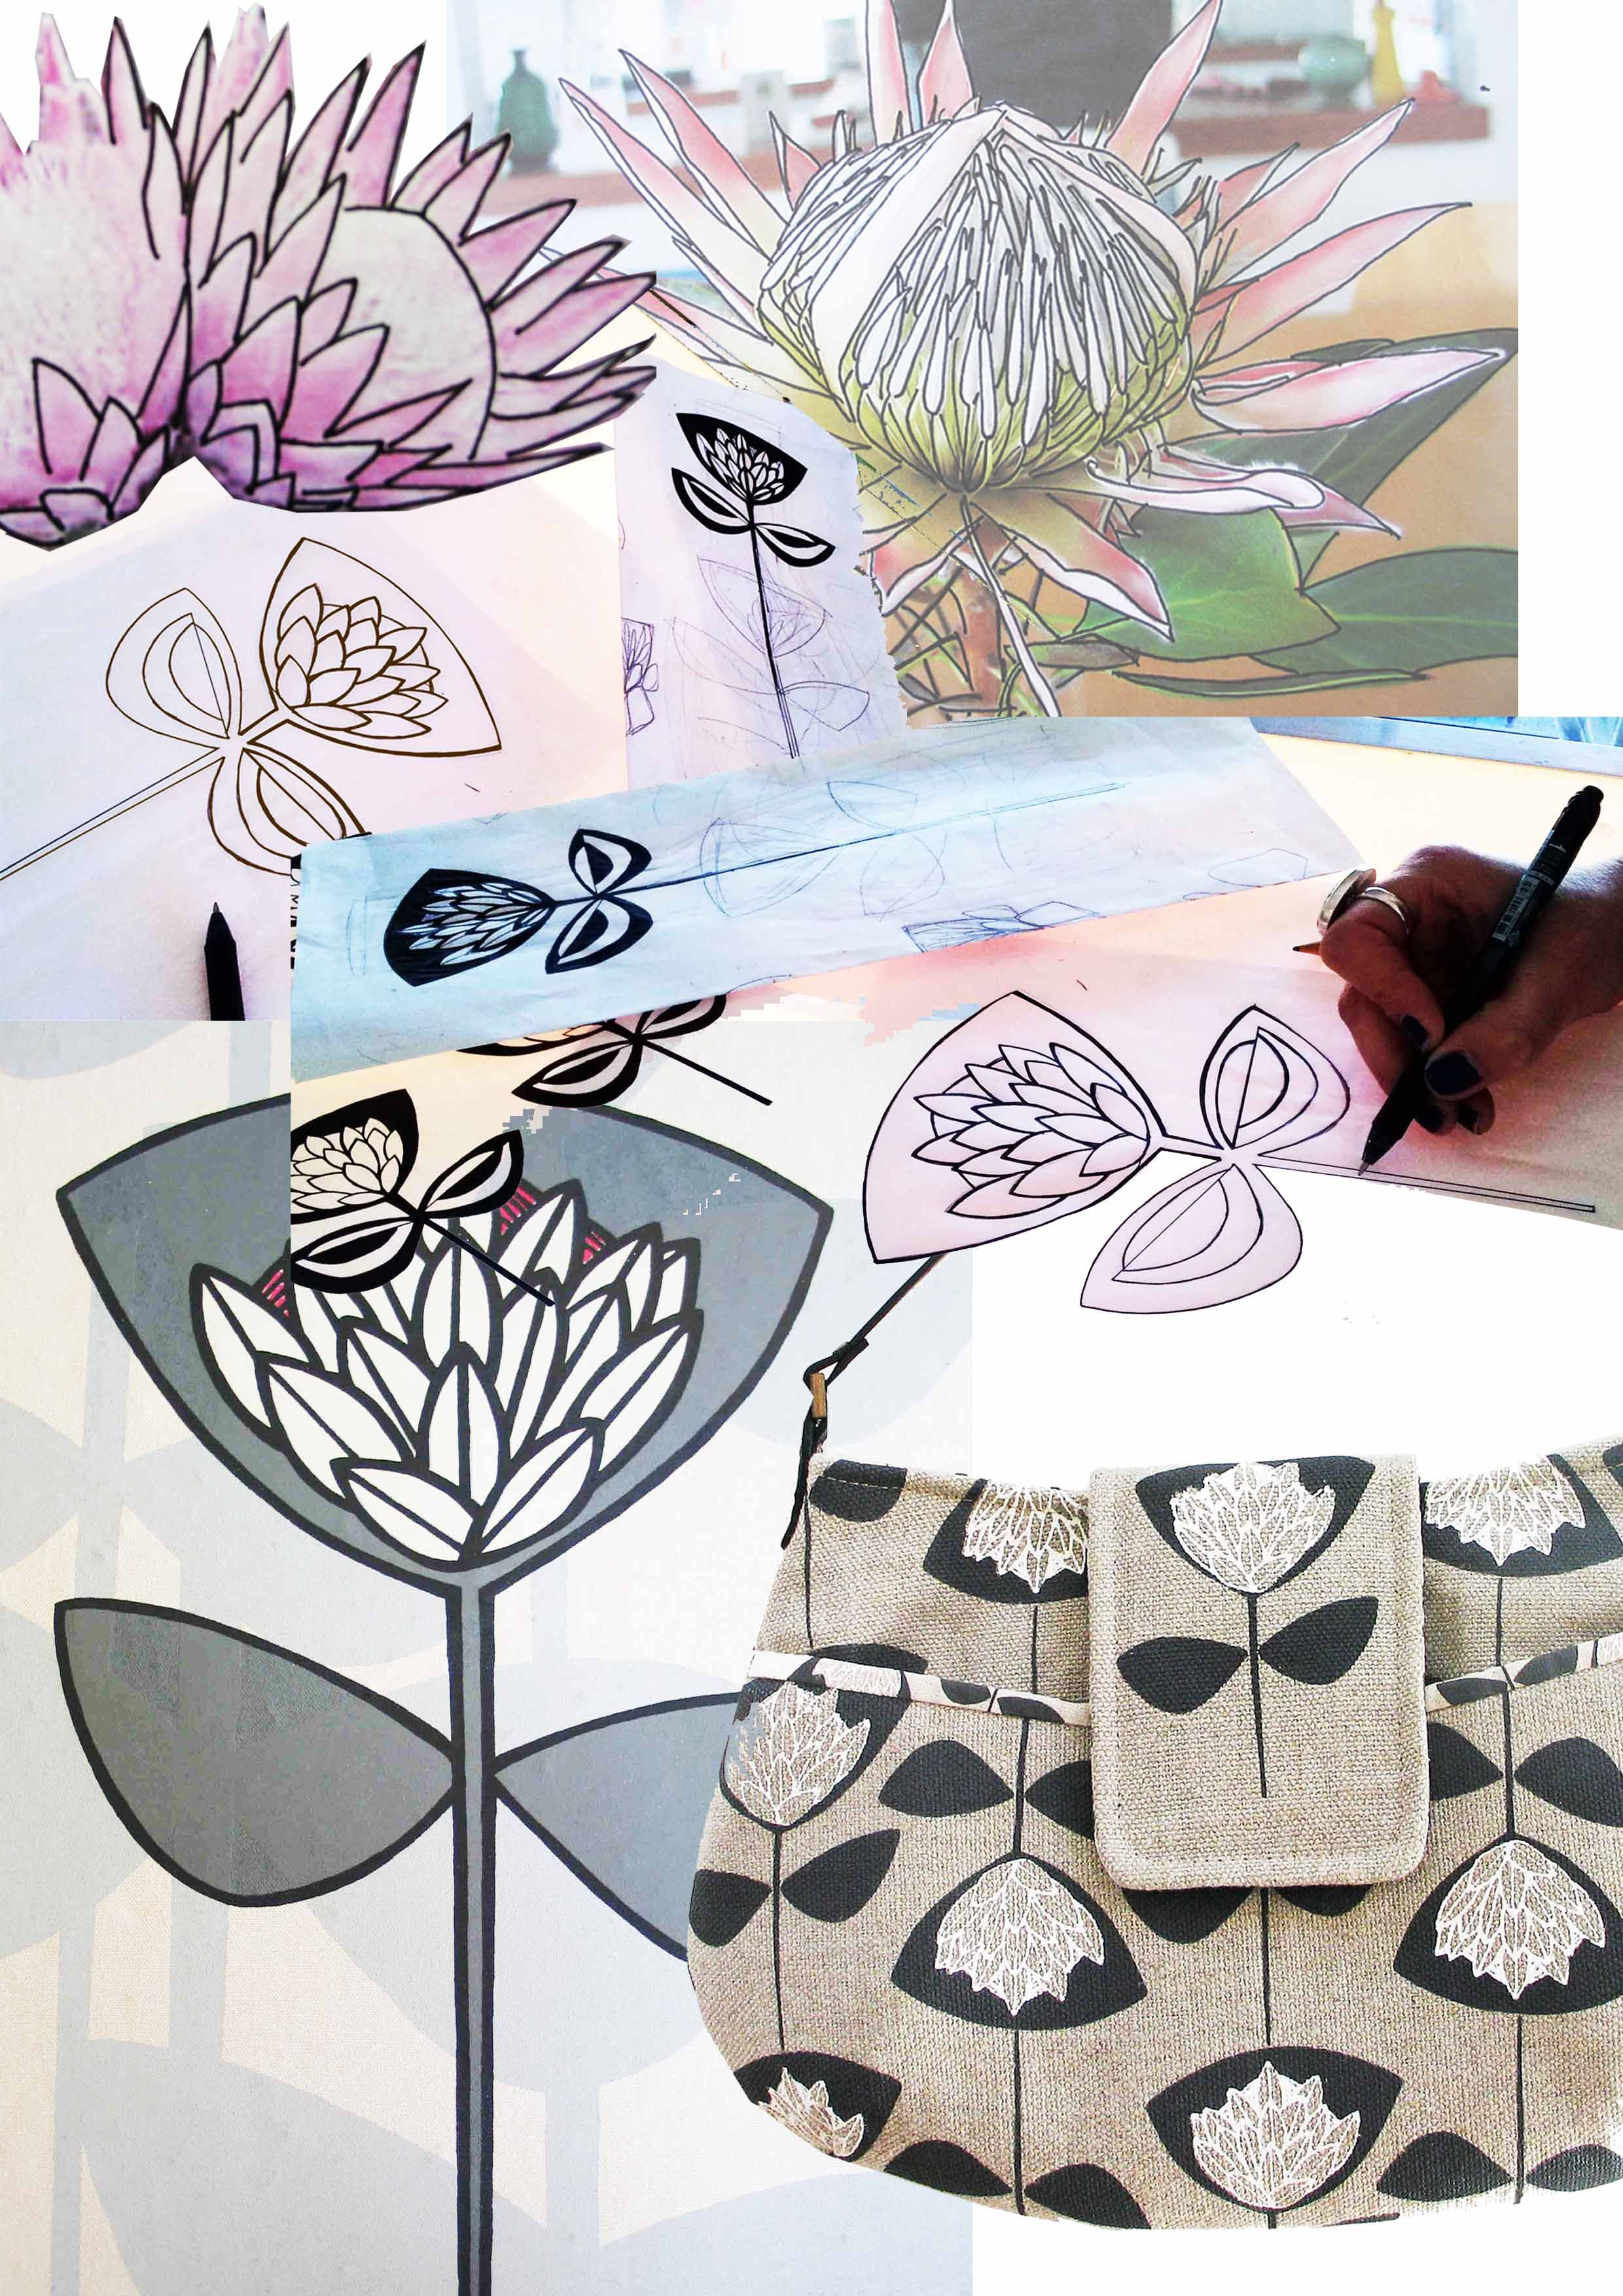 Sq Worked Into King Protea Flower Www Suziequ Co Uk Screen Printing Inspiration Protea Flower Screen Printing